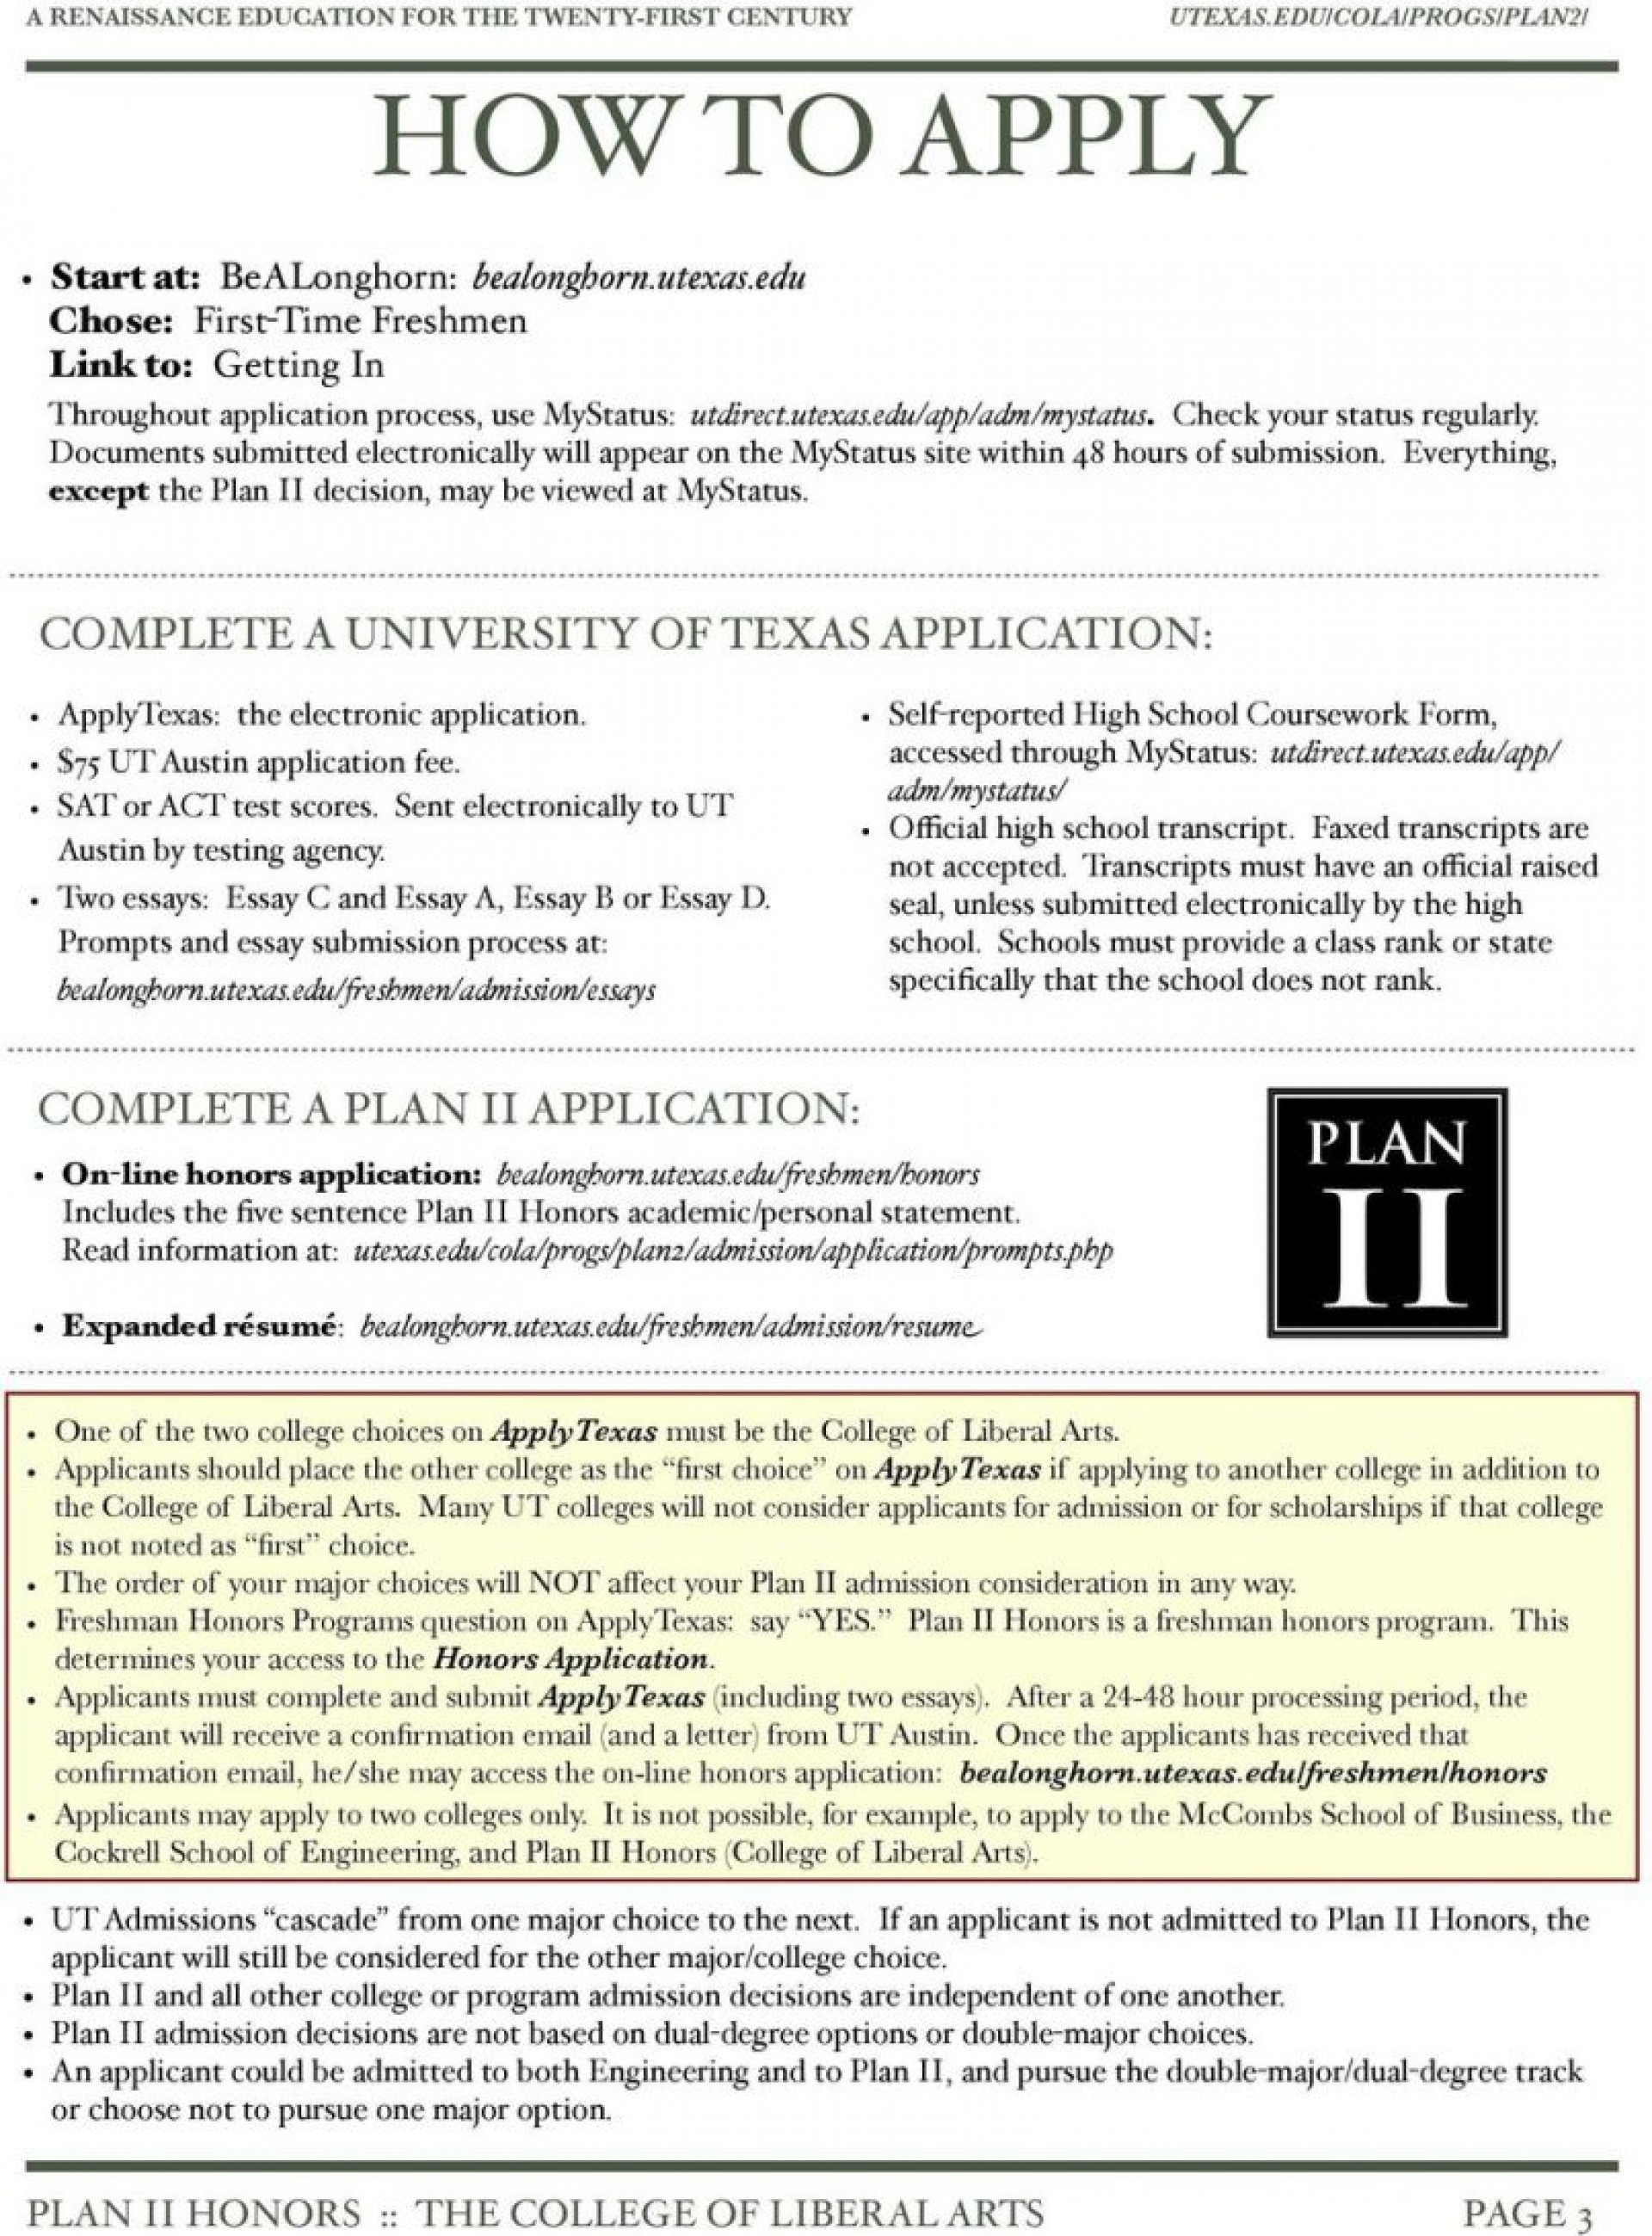 004 Essay Example Applytexas Prompts Poemdoc Or Apply Texas Topic Examples P Top Essays 2019 That Worked Word Limit 1920